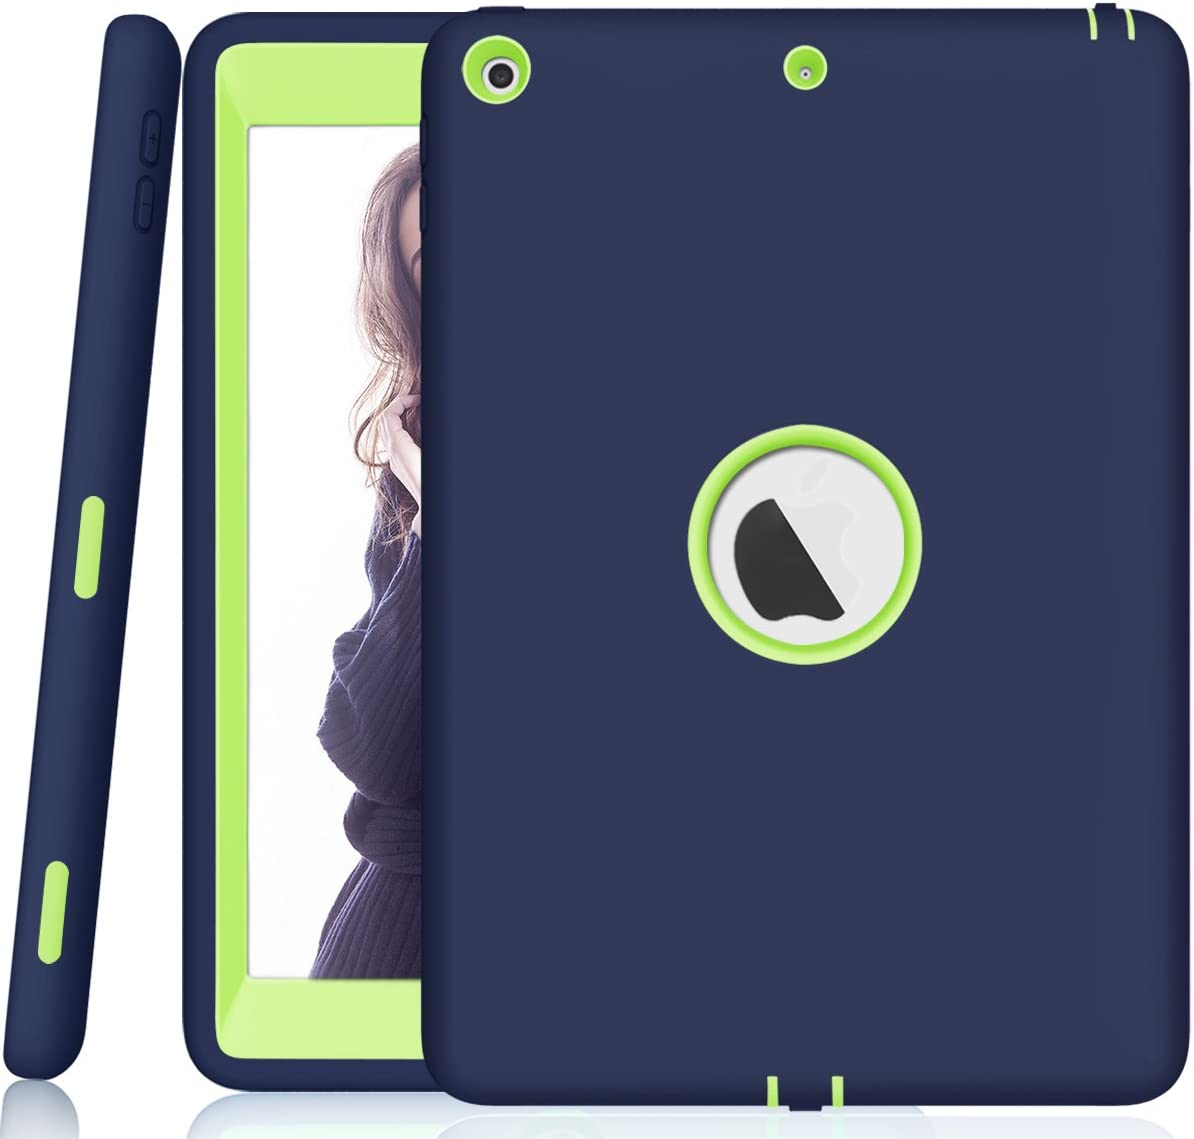 Sevrok iPad 6th Generation Cases - [ Minimalist-Series ] Slim Shockproof Defender Hard Shell+Silicone Exterior for Apple iPad 2018 9.7-inch, Compatible with ipad 2017 (5th Generation), Navy